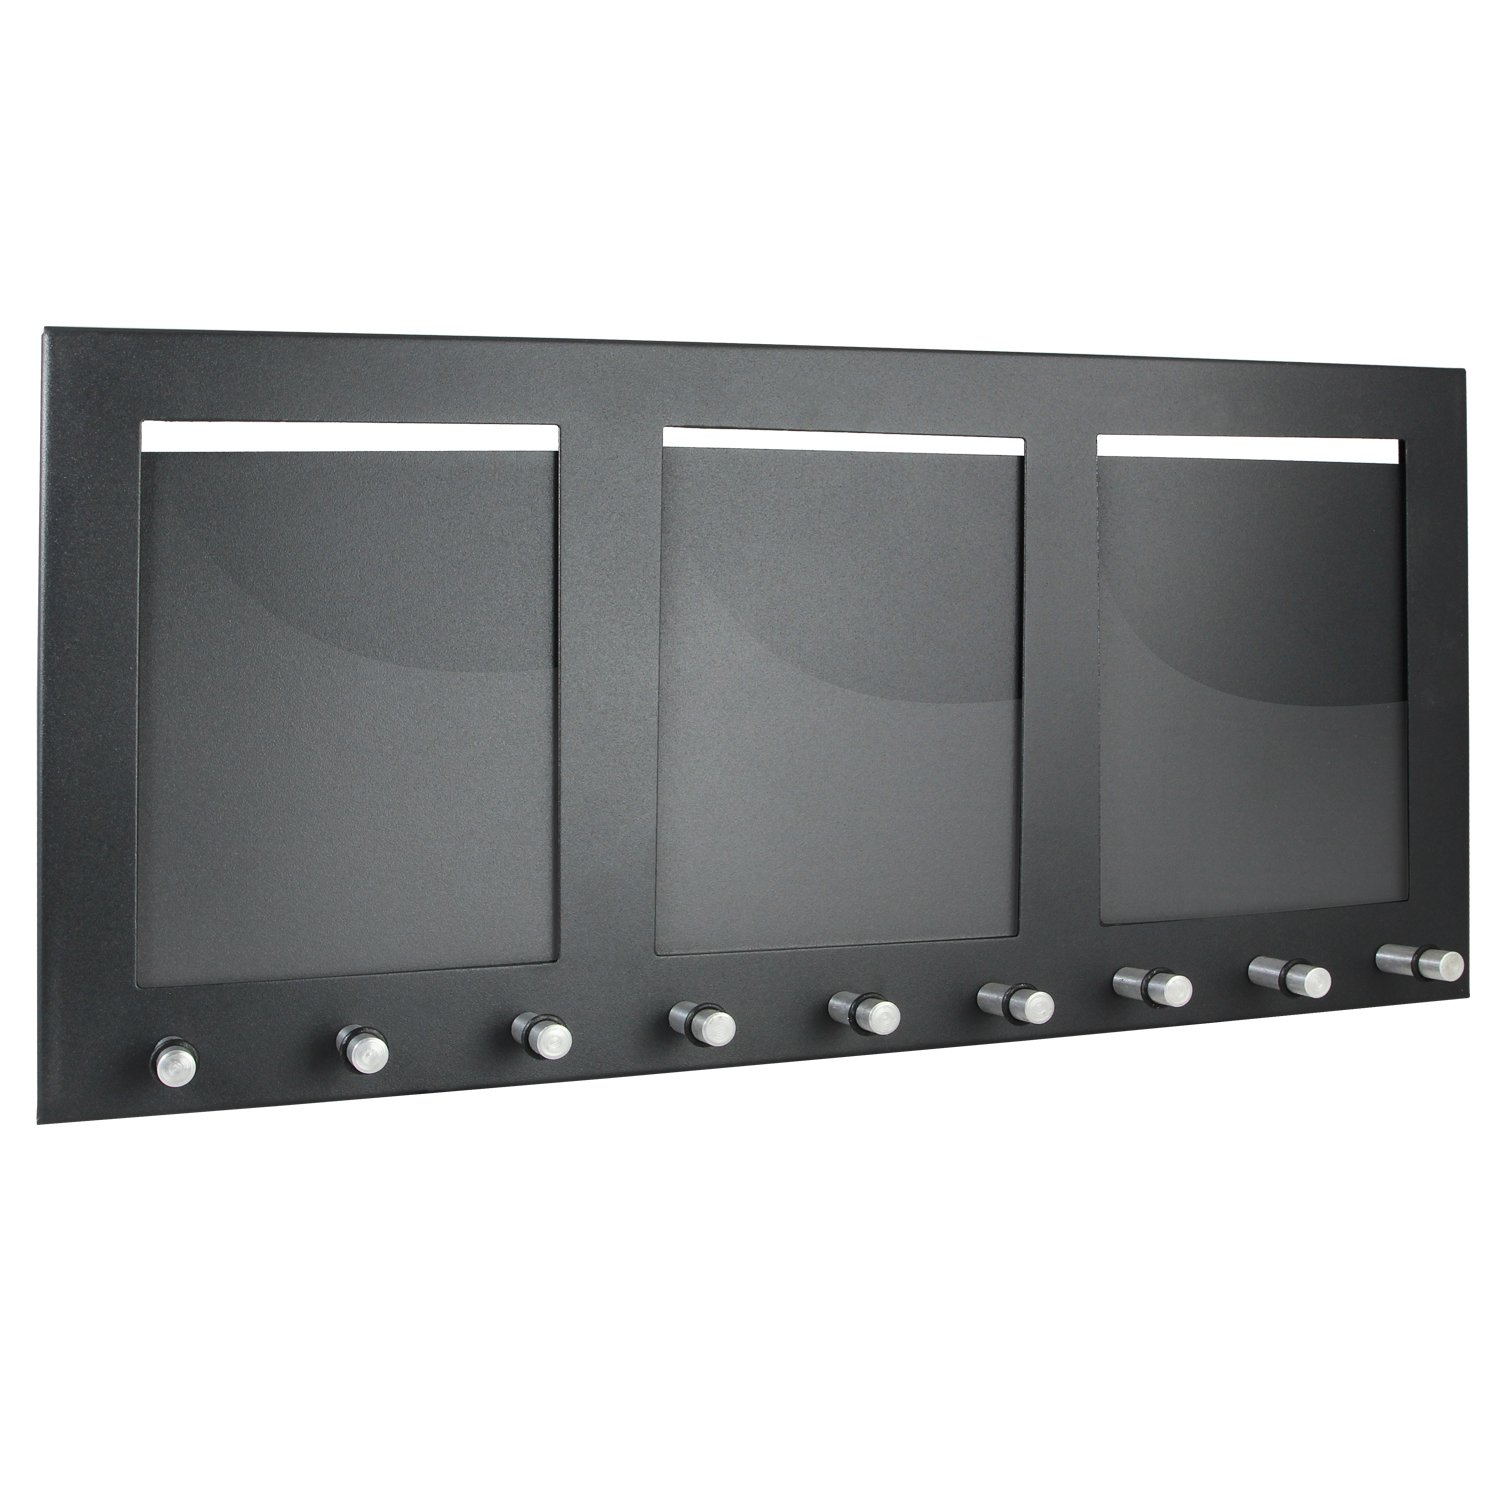 HMF 10850-02 Key Cabinet Board 9 Keys with 3 Photo Frames 44 x 20 x 1 cm , black